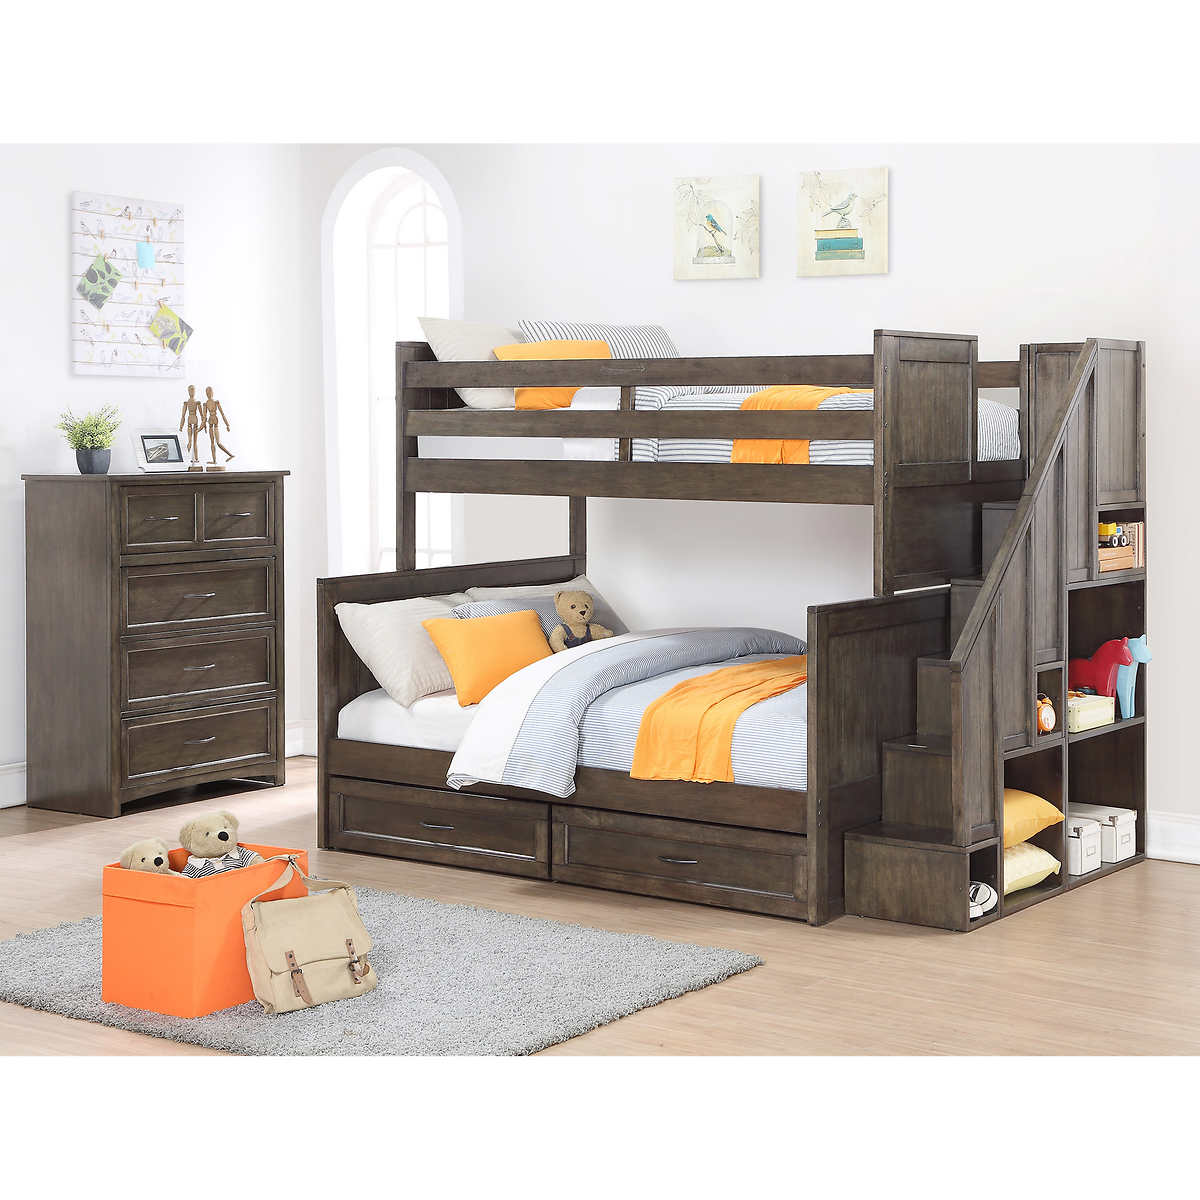 Images Of Beds bunk beds | costco